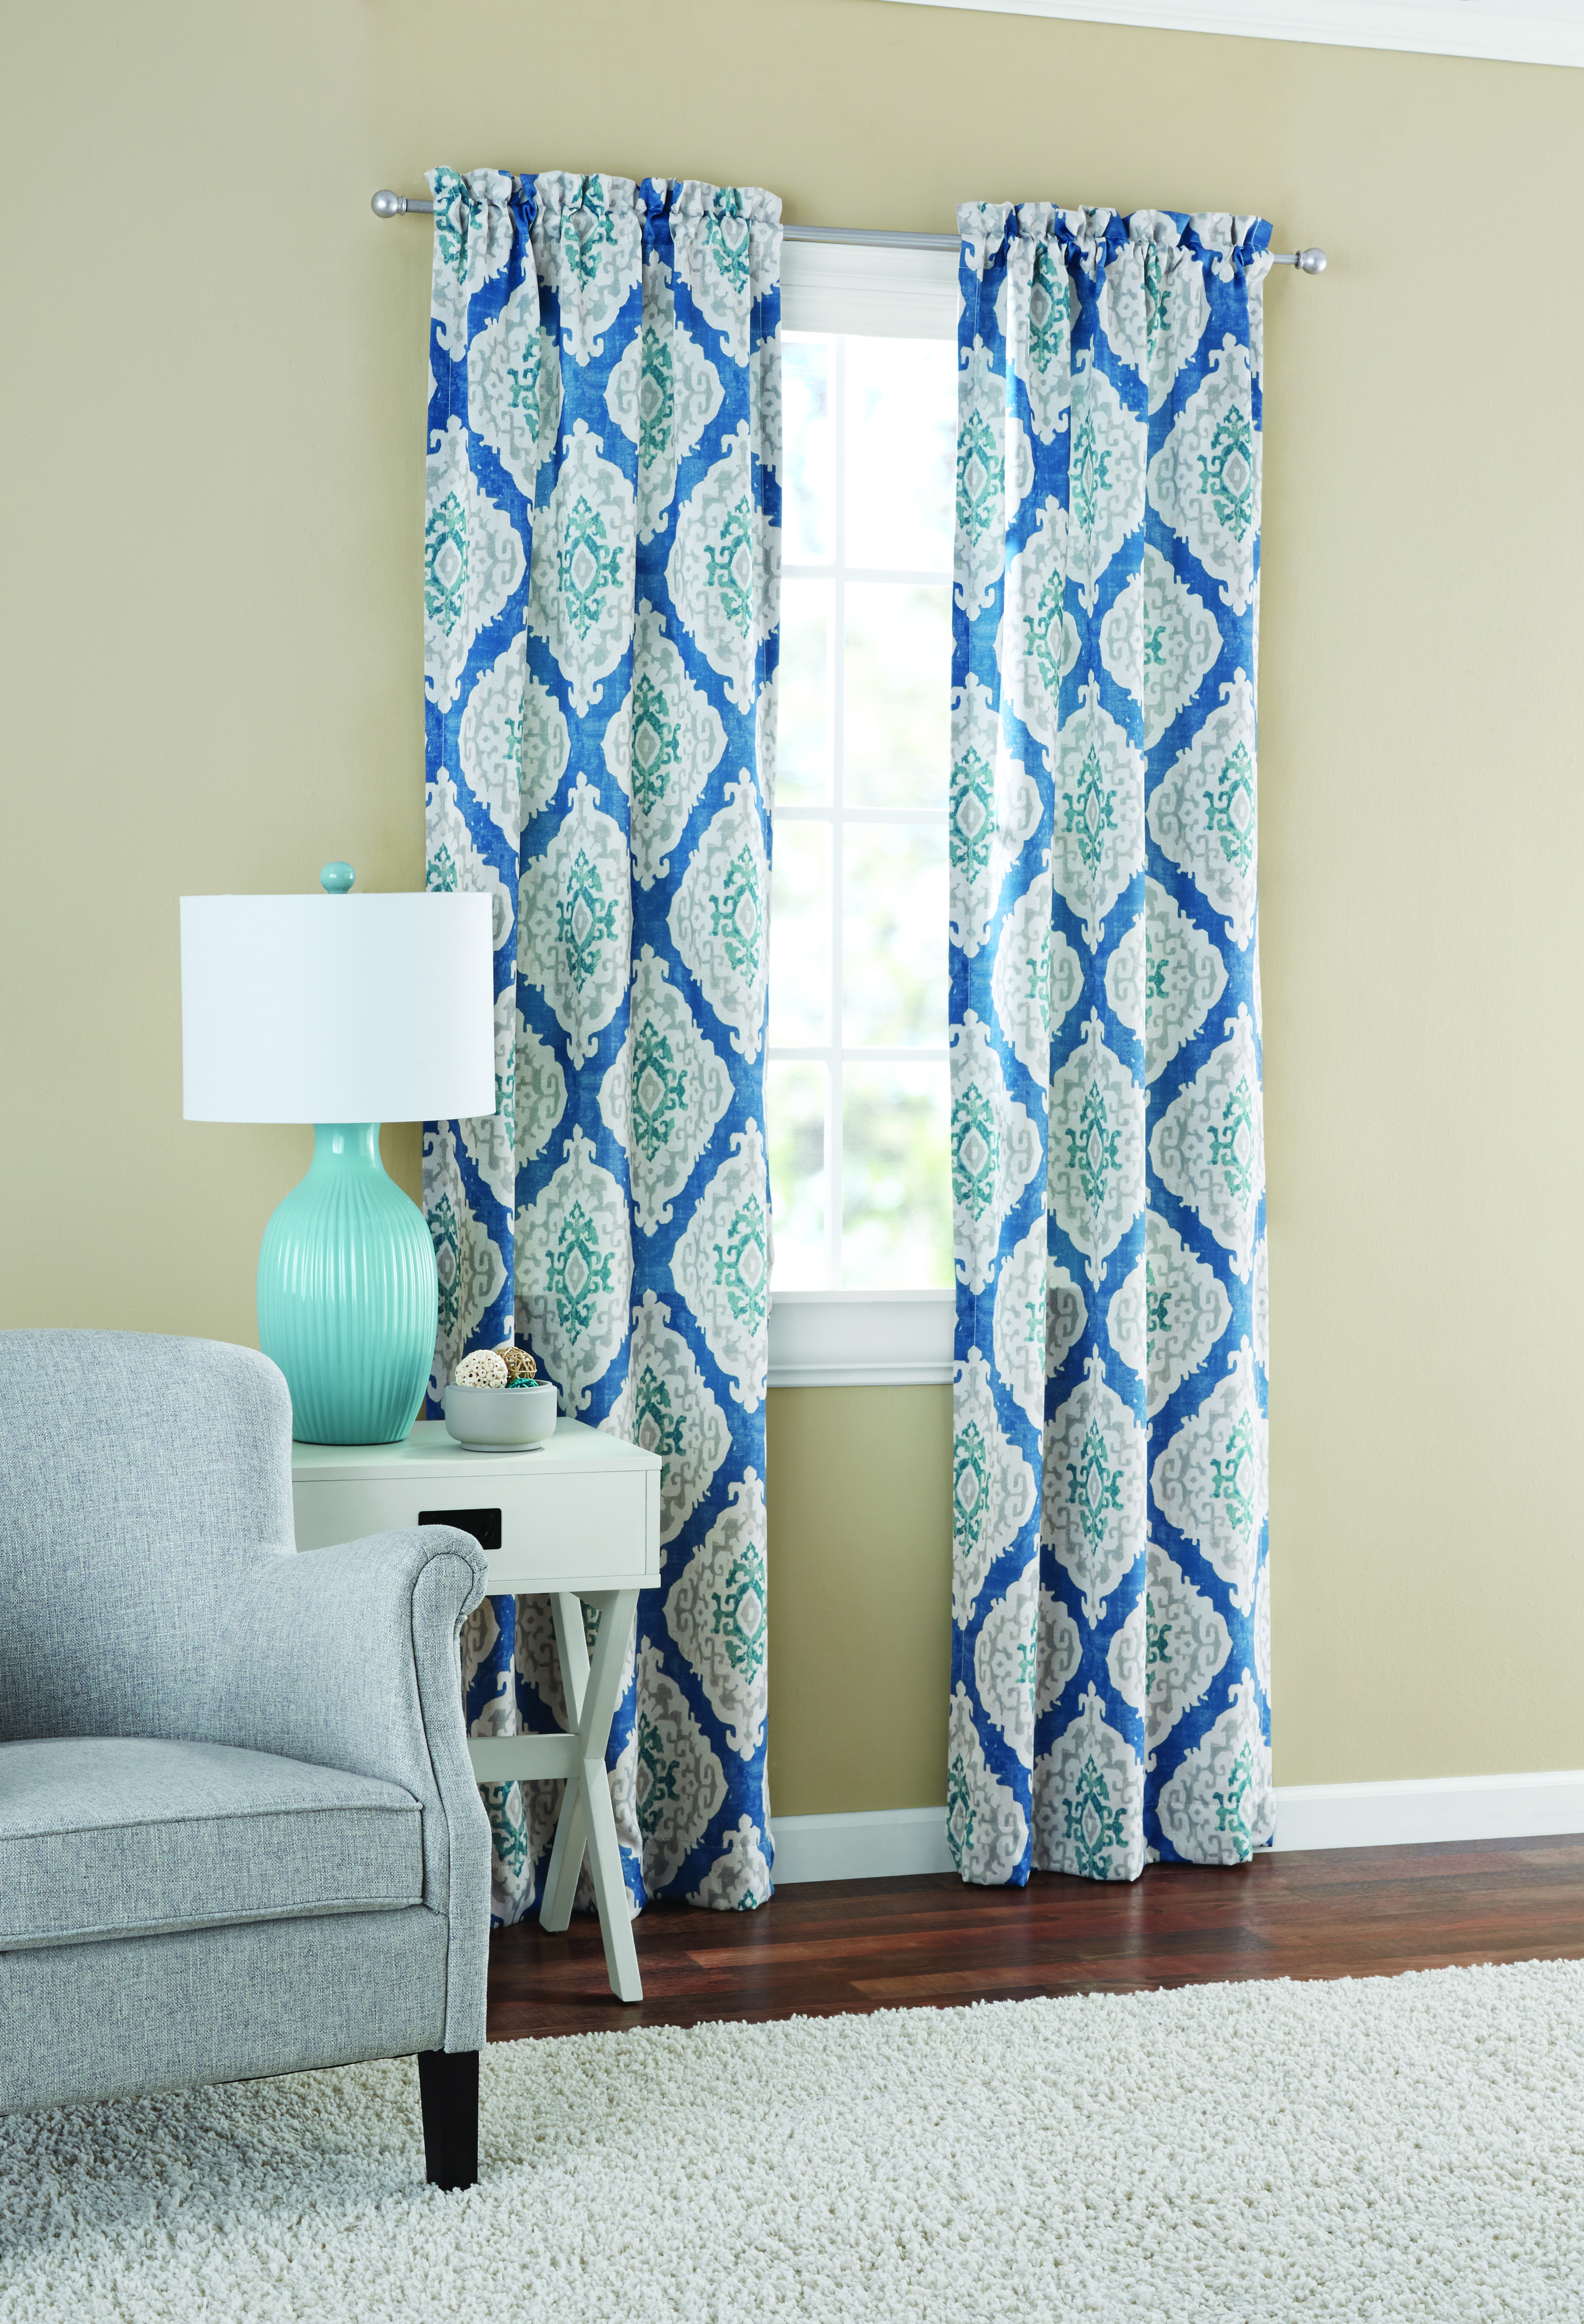 Mainstays Distressed Ikat Room Darkening Window Curtain Regarding Eclipse Corinne Thermaback Curtain Panels (View 18 of 20)